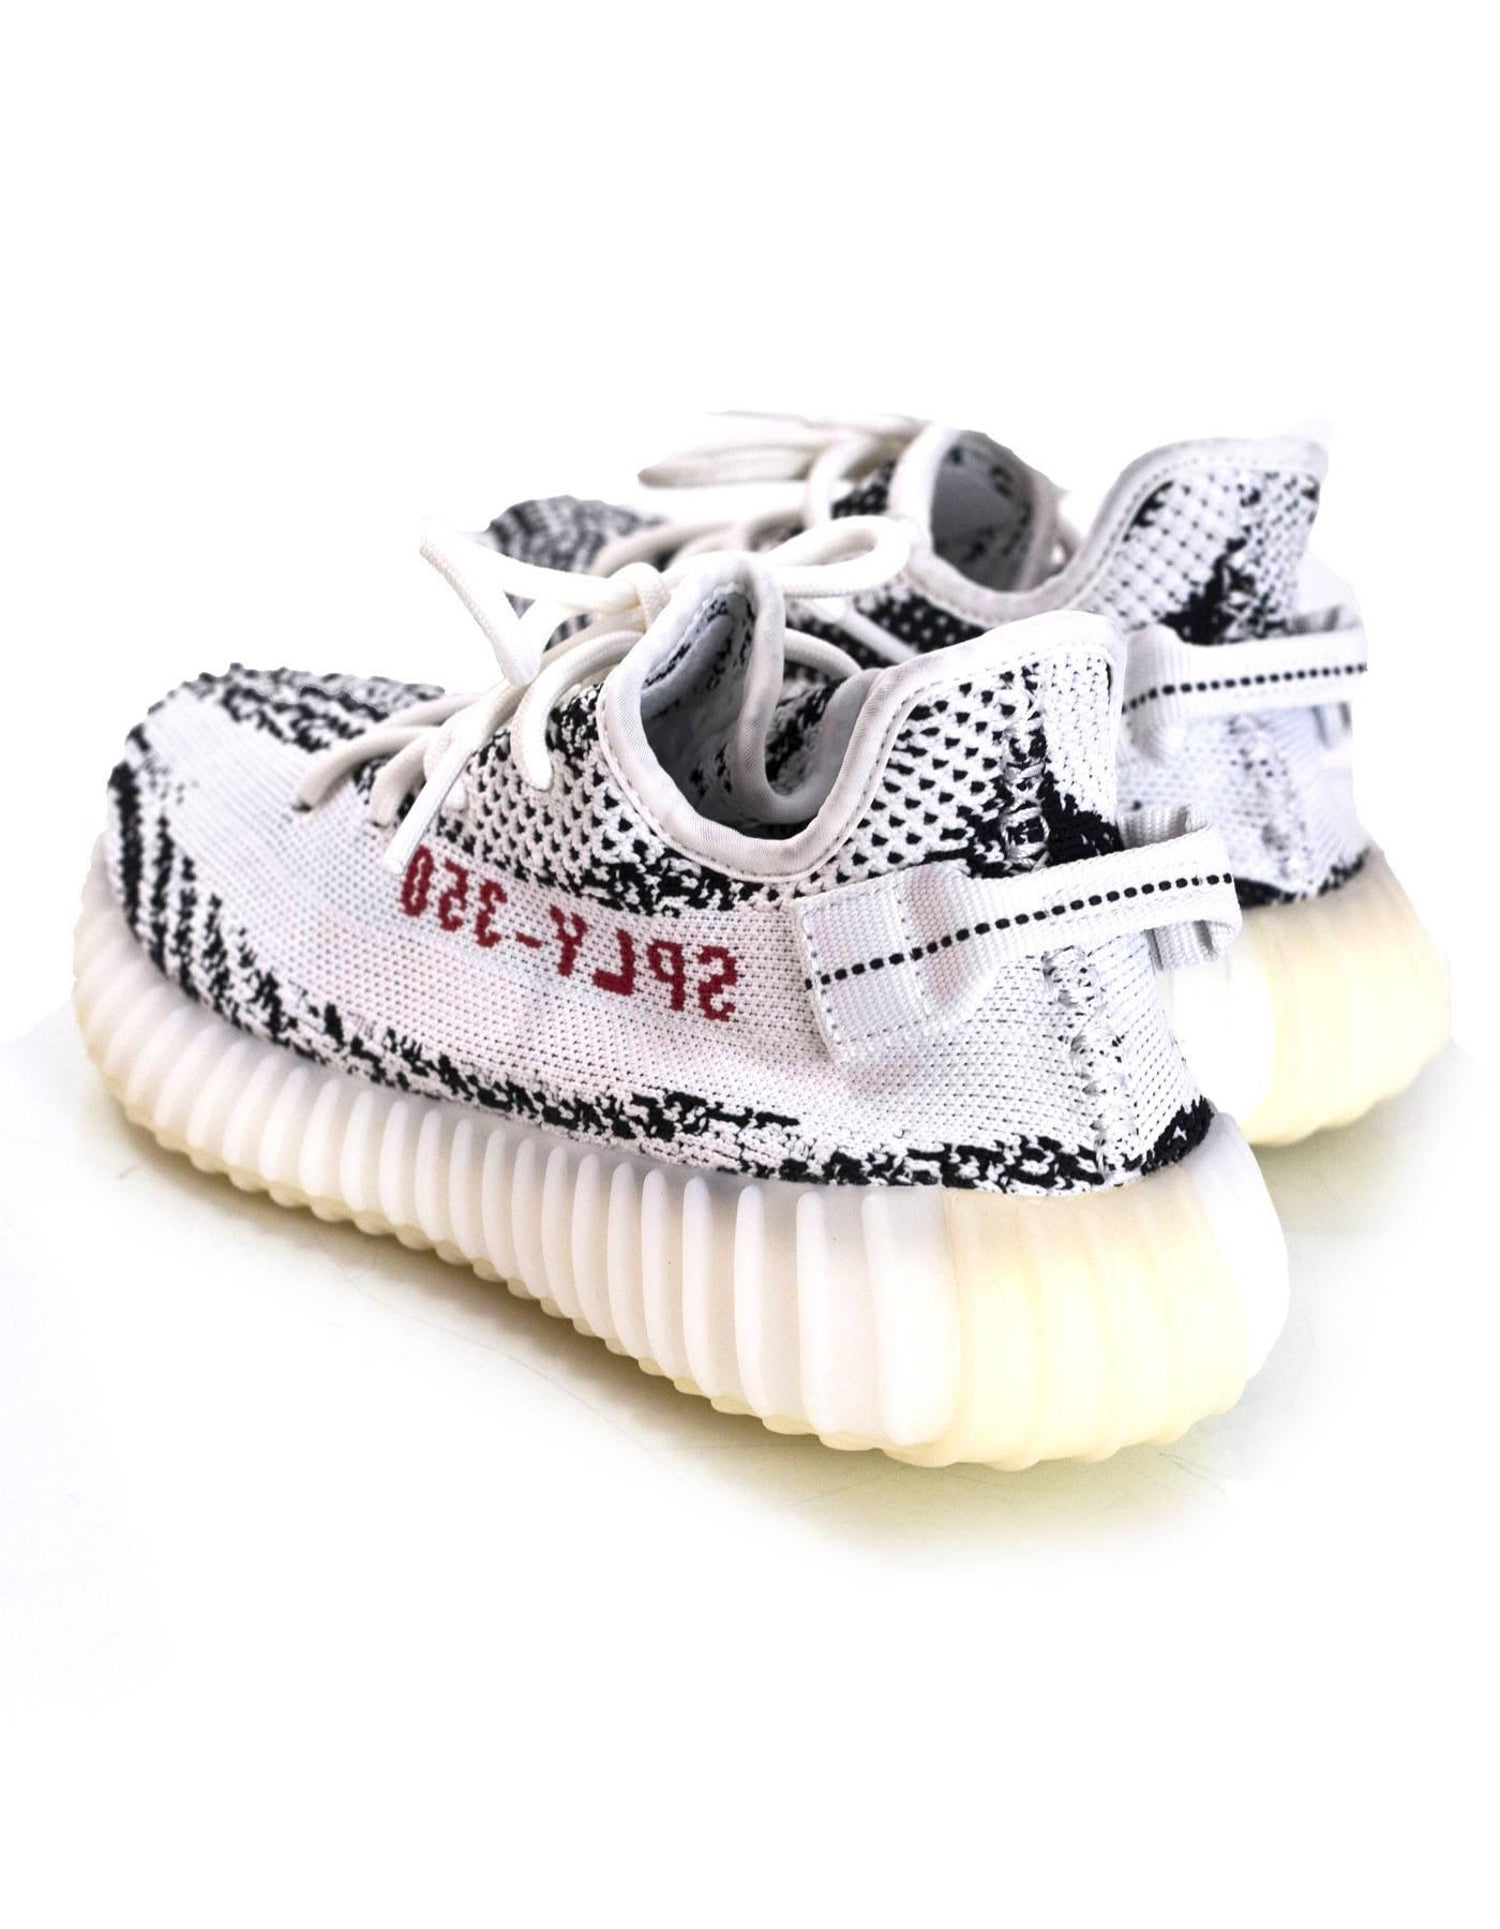 c6288e5ffd8 Adidas x Kanye West Yeezy Boost 350 V2 Zebra Sneakers Sz 6 For Sale at  1stdibs